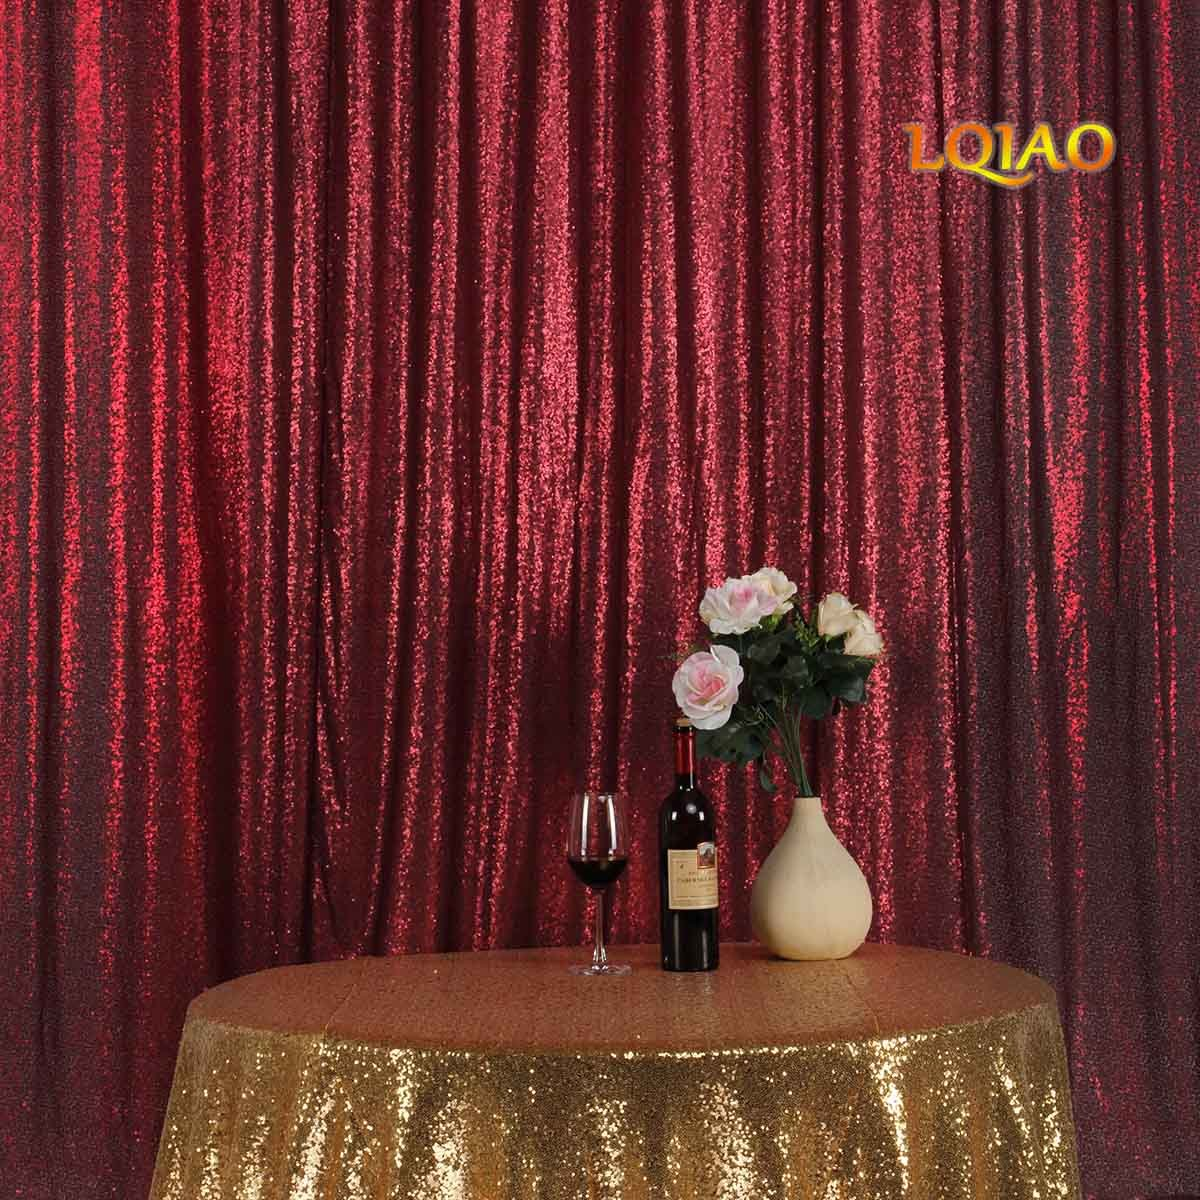 LQIAO Sequin Curtain 10X10FT-Burgundy Sequin Backdrop Wedding Photo Booth Door Window Curtain for Halloween Party Wedding Decoration